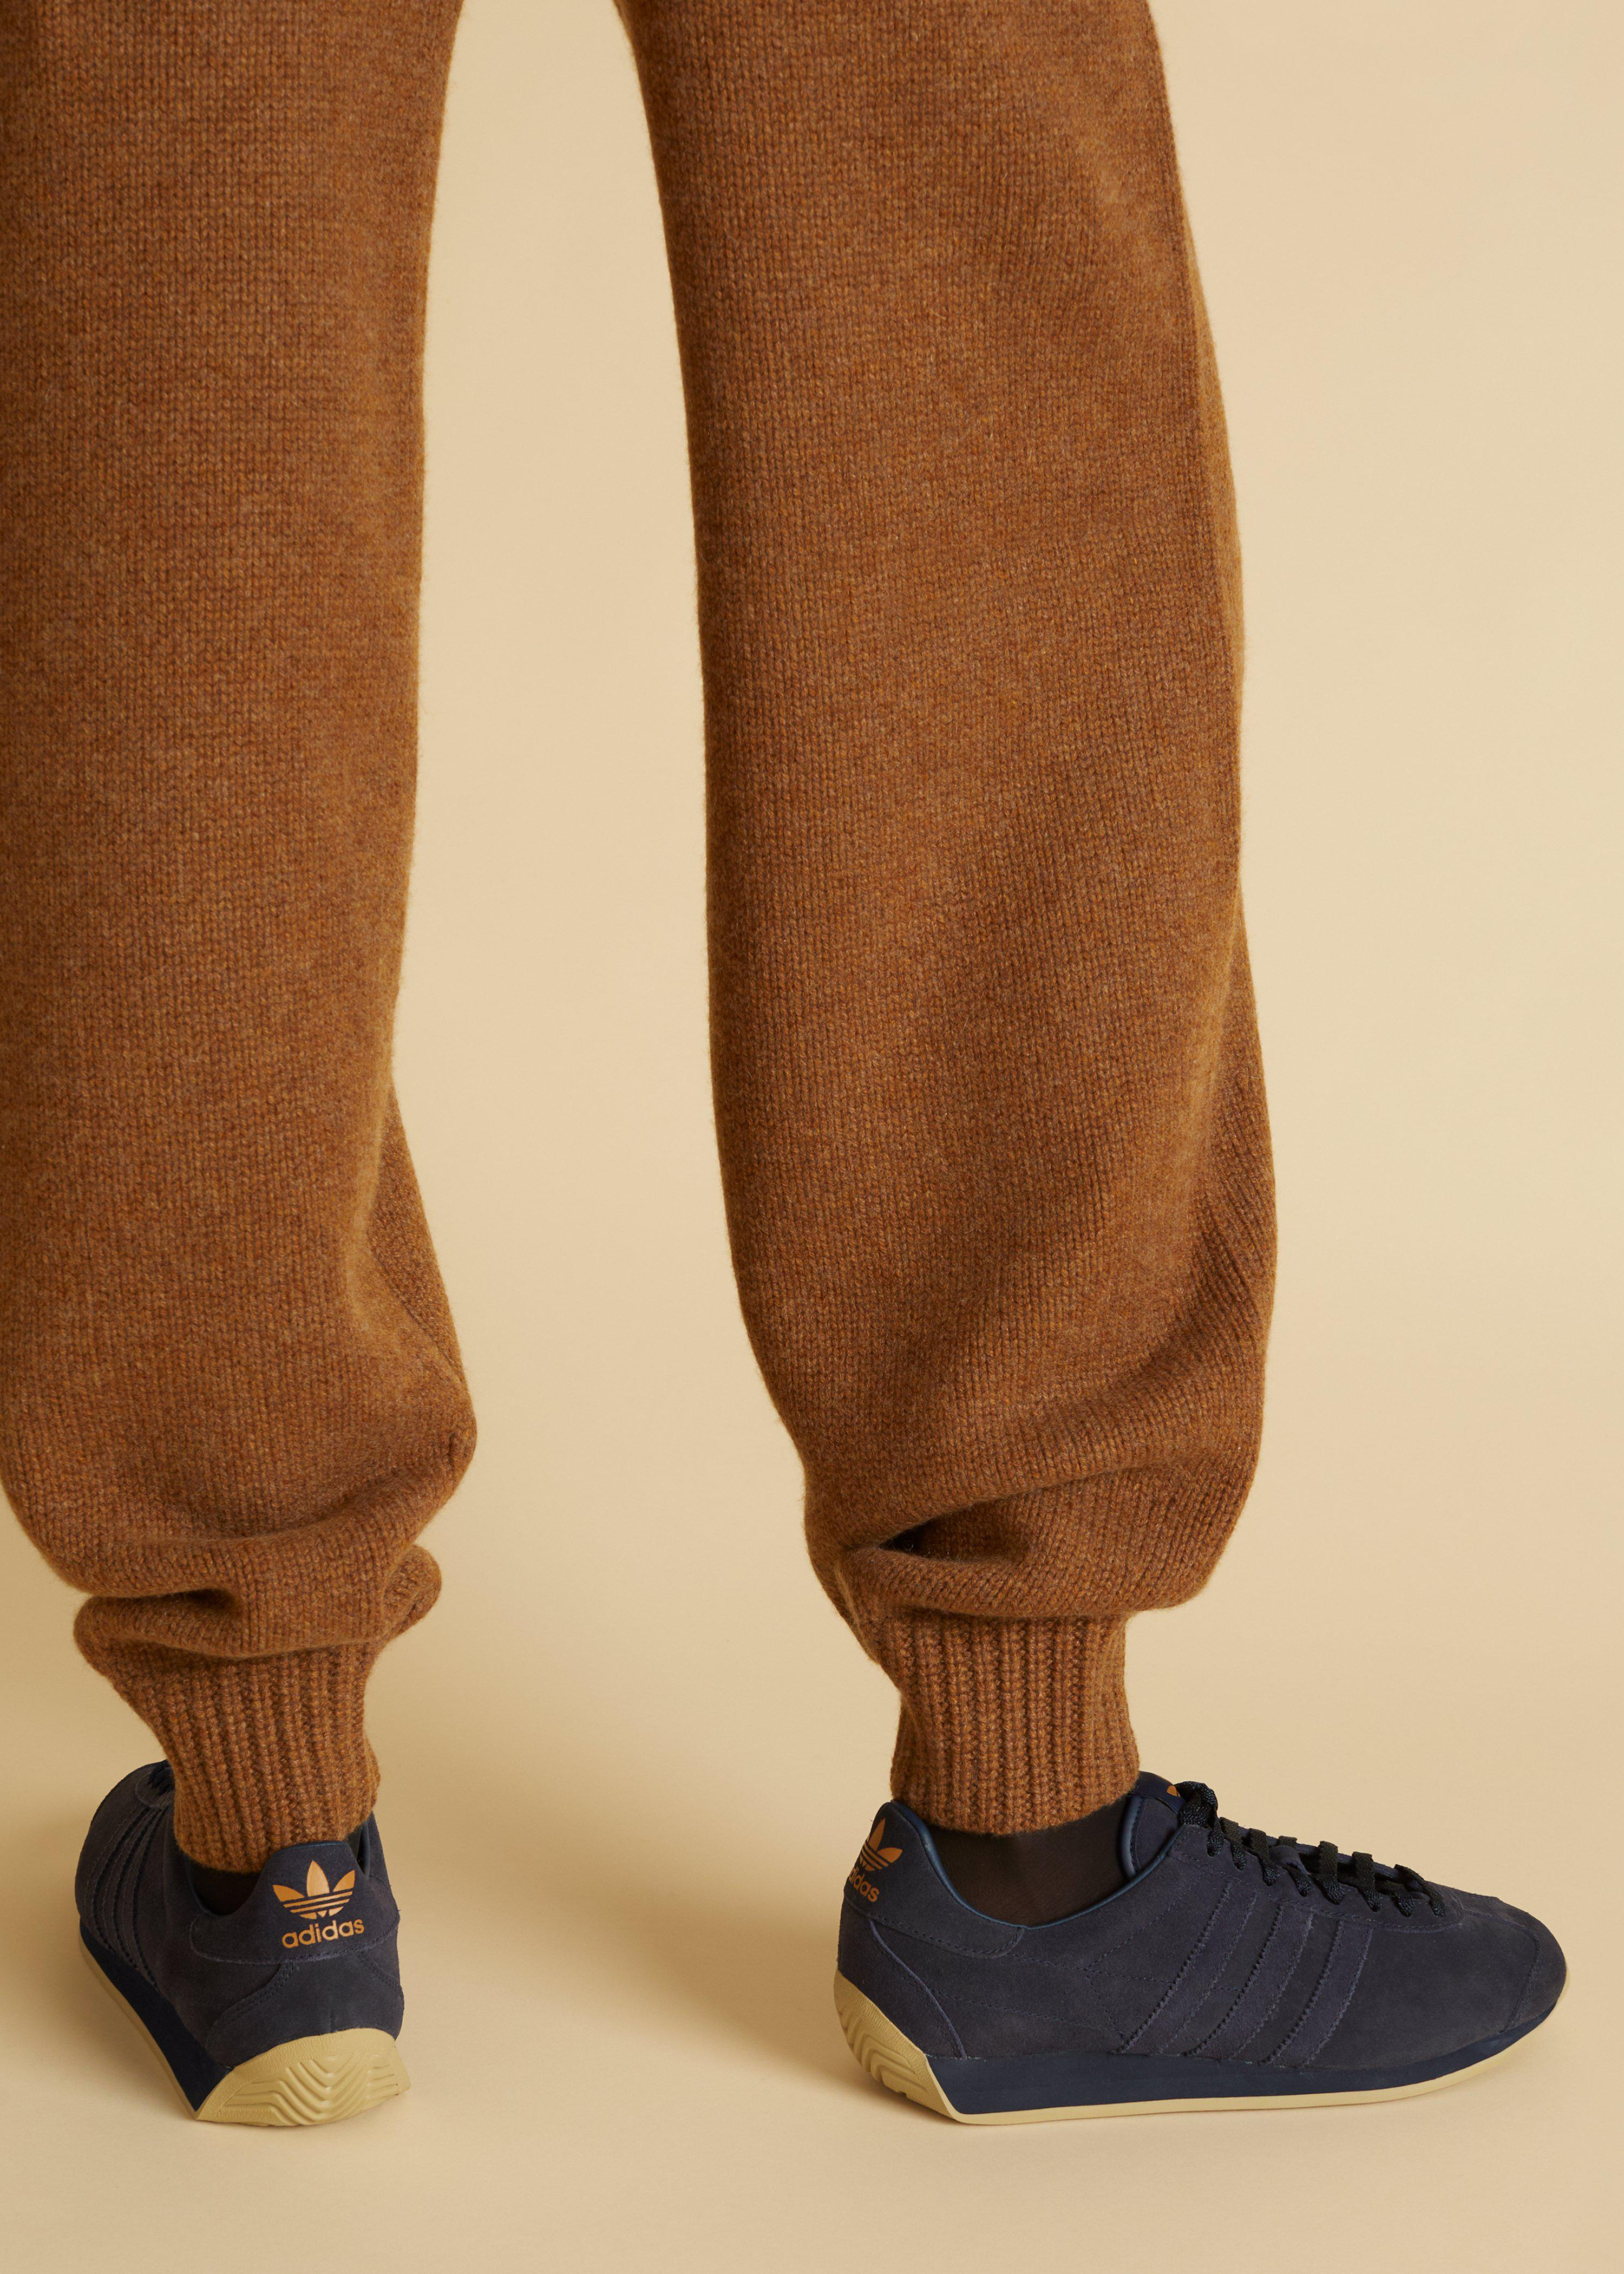 The Joey Pant in Walnut 3